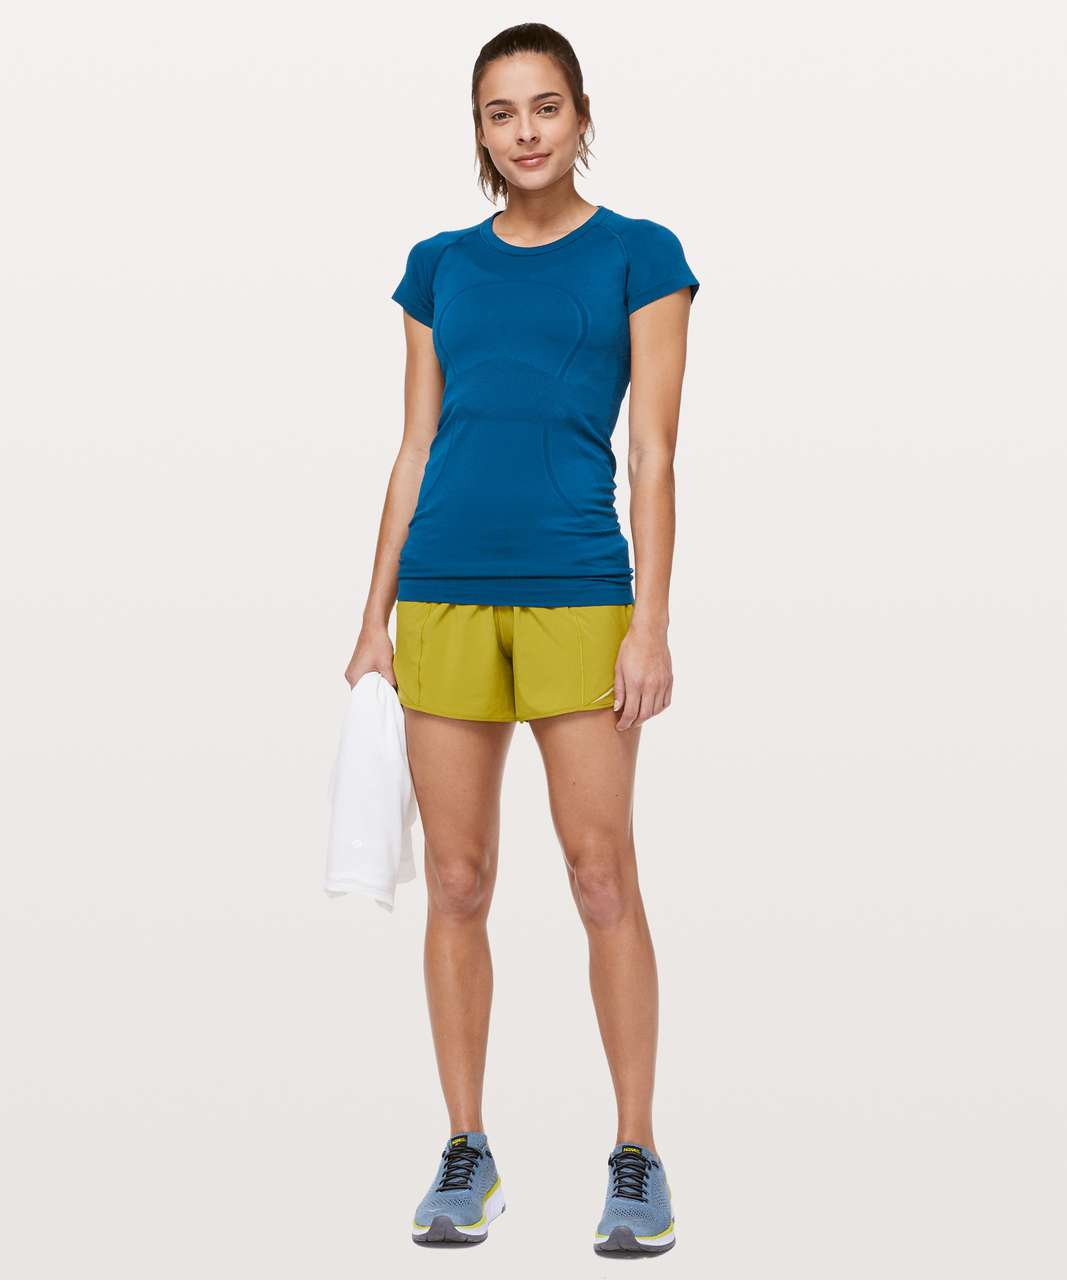 Lululemon Swiftly Tech Short Sleeve Crew - Deep Marine / Deep Marine